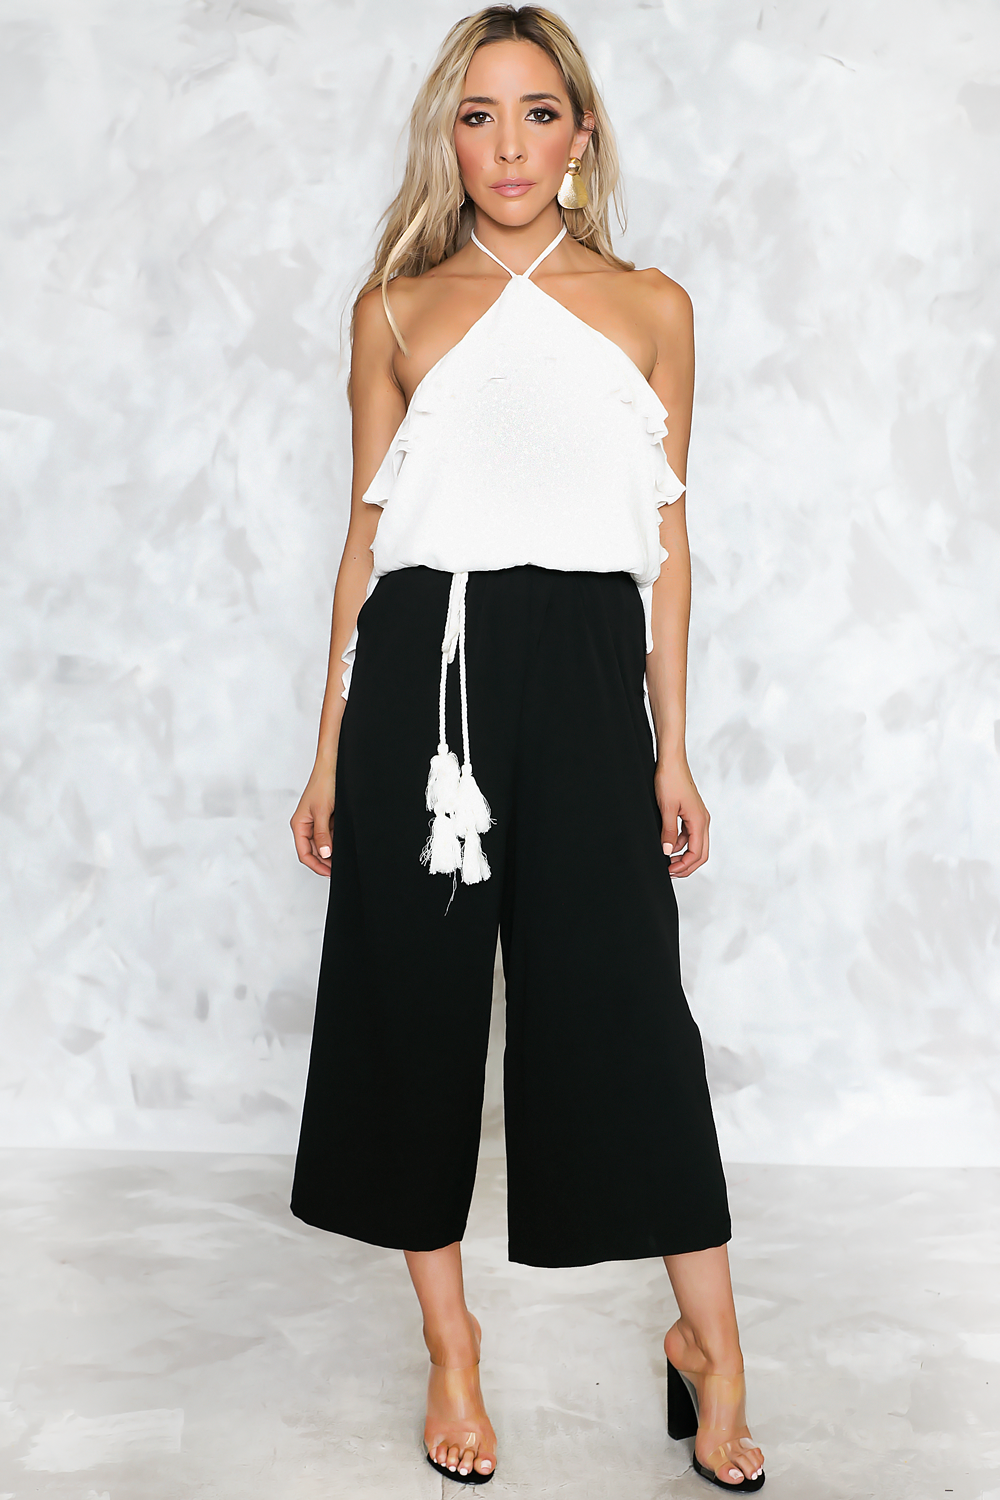 Two Stories Ruffle Crop Jumpsuit - Haute & Rebellious